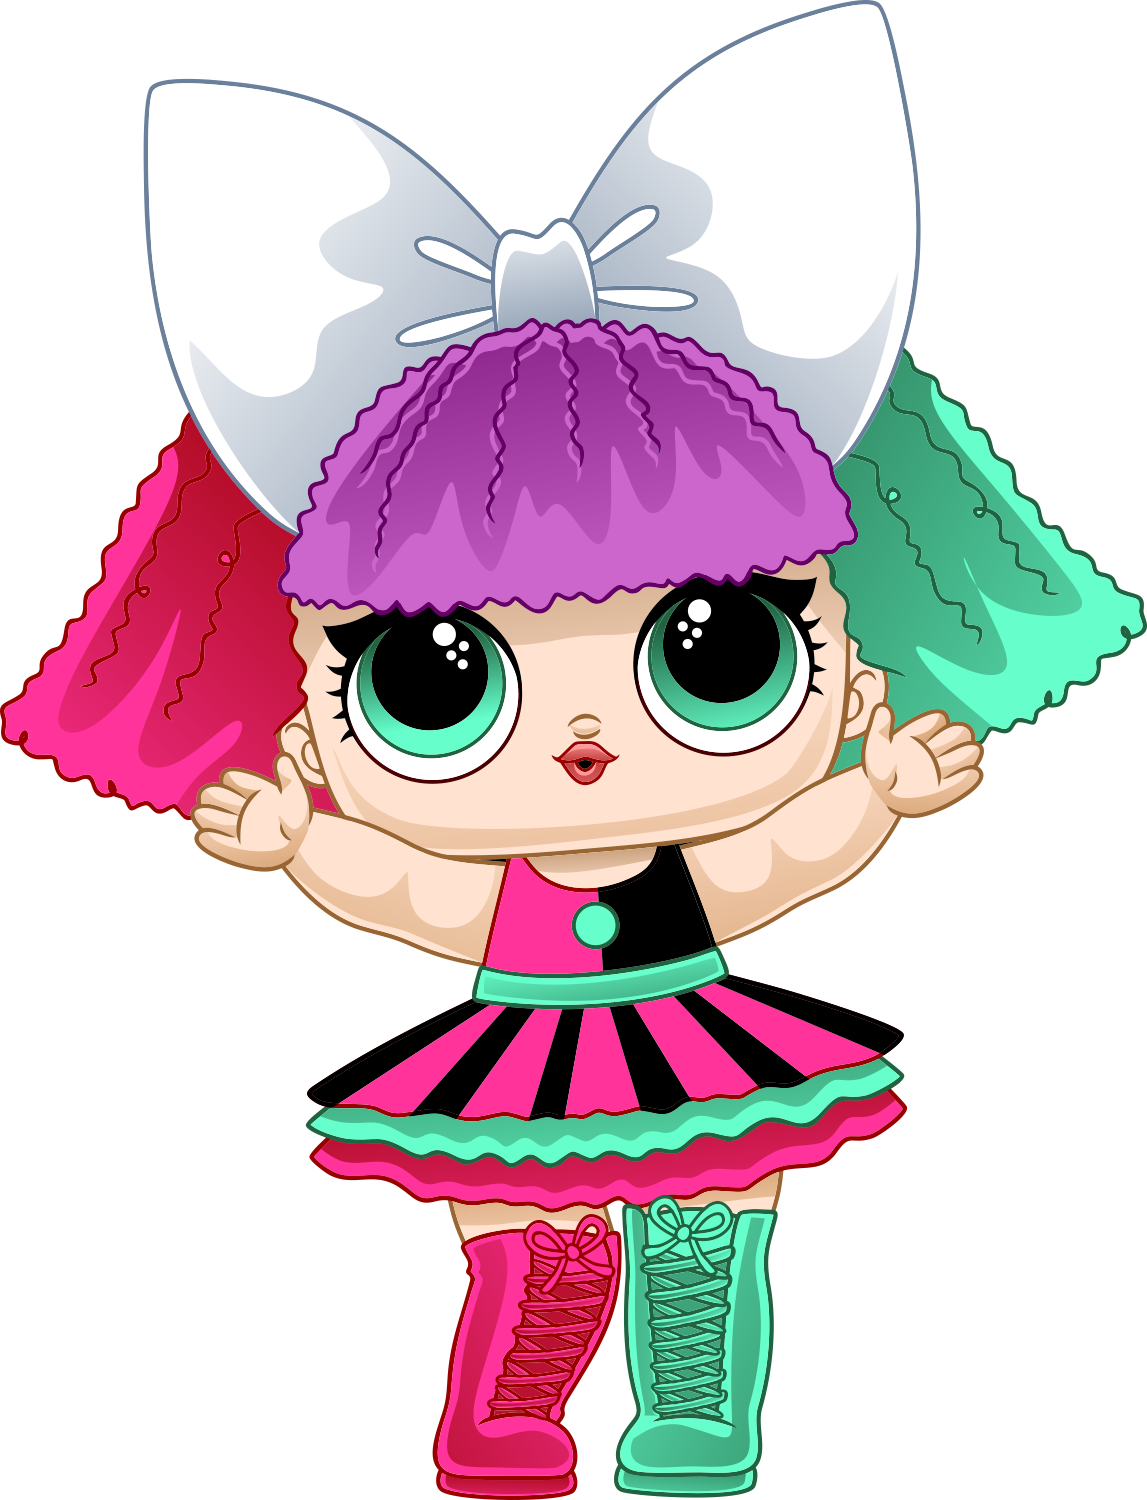 100 Lol Surprise Vectors In Cdr Png And Svg Lol Dolls My Little Pony Poster Cute Cartoon Girl